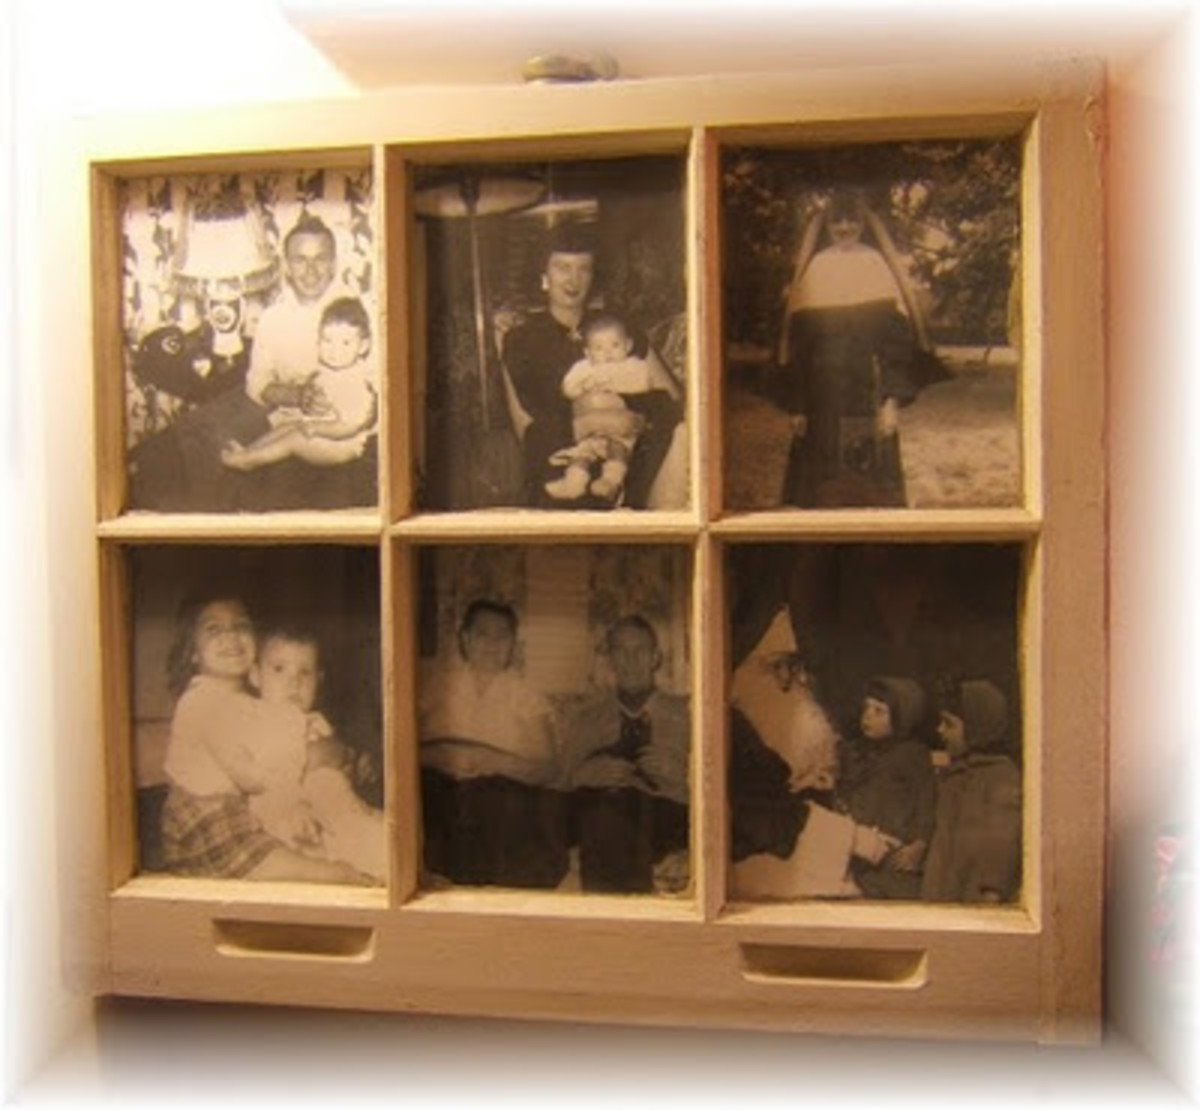 A lovely and unique idea is to display old photos inside vintage window panes